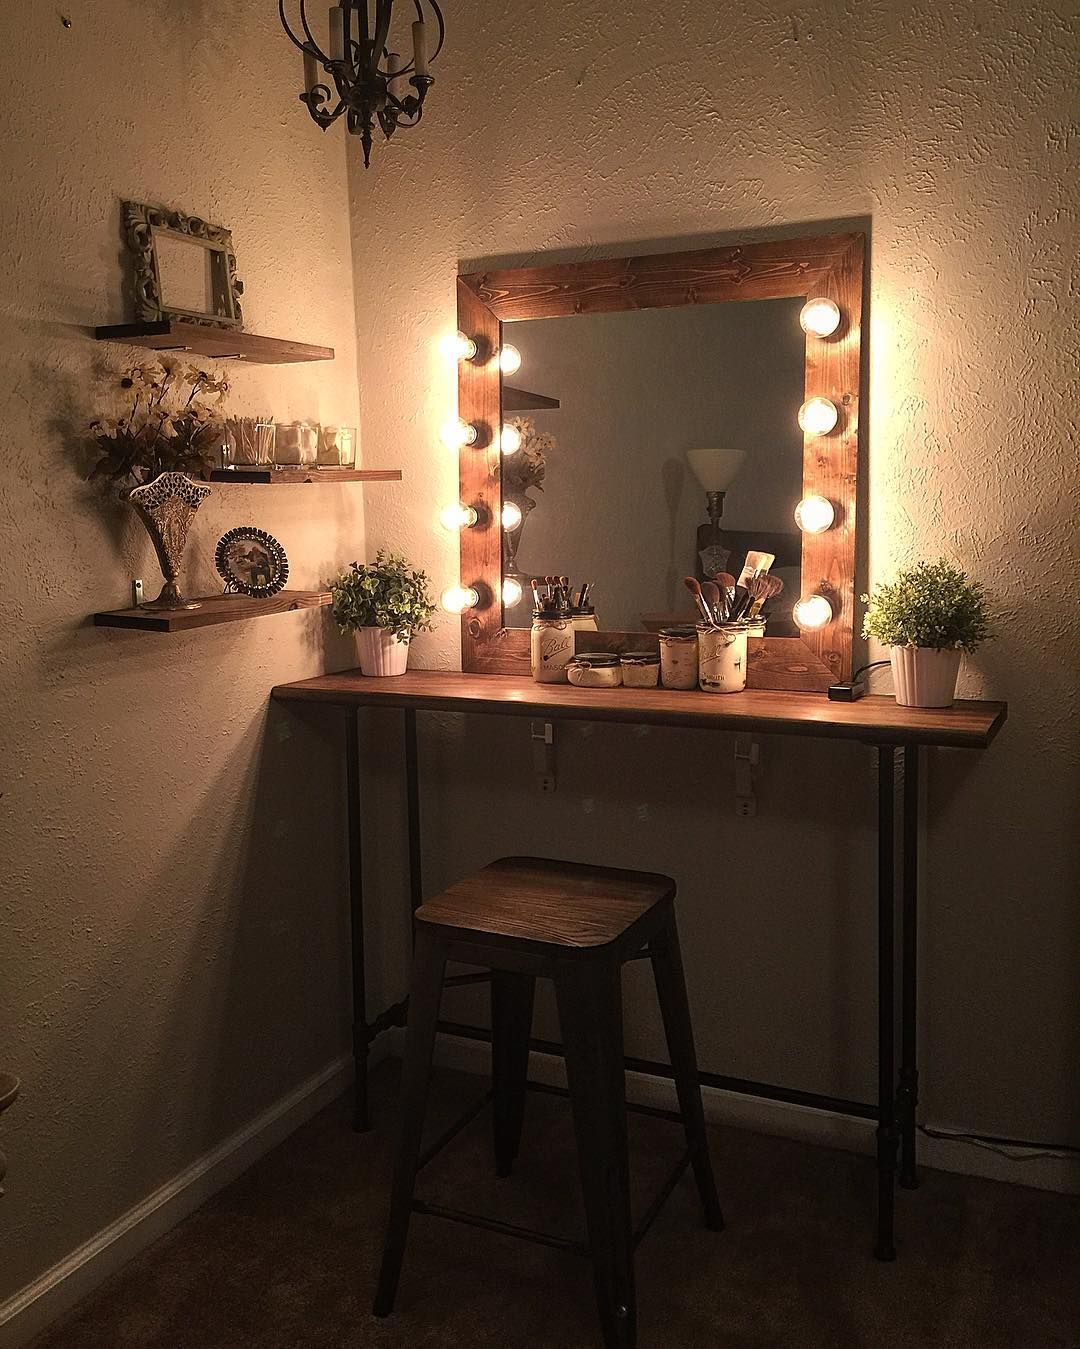 Cute easy simple DIY wood rustic vanity mirror with hollywood style ...